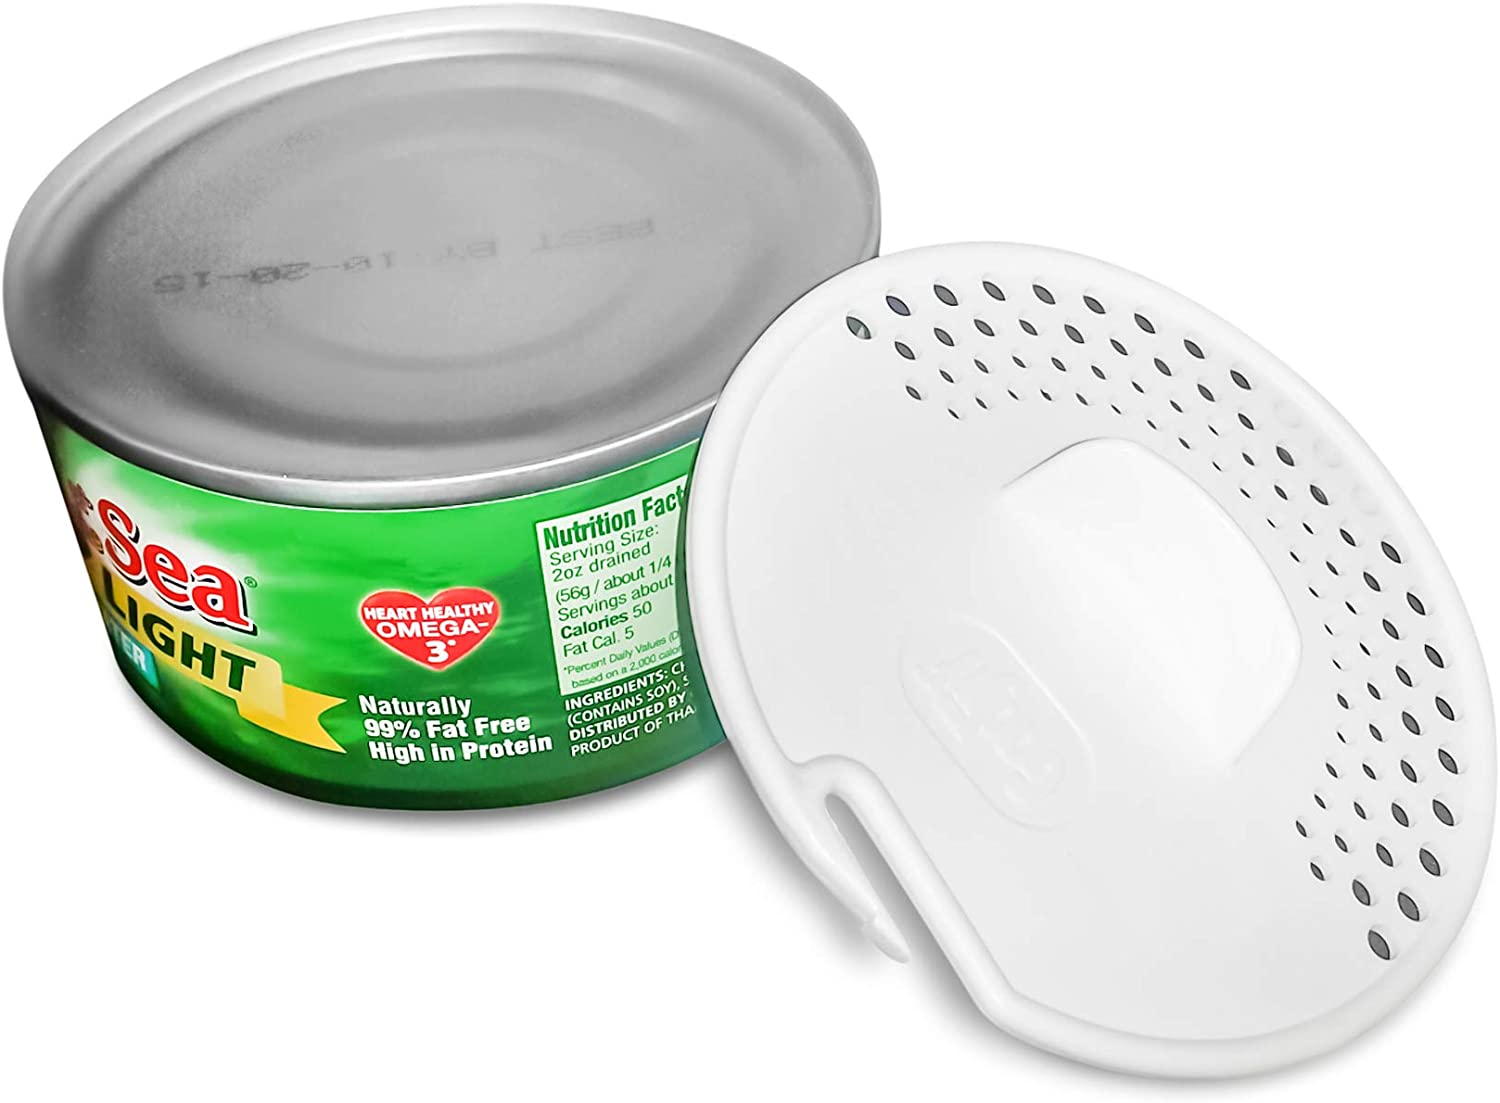 Gadjit Tuna Can Strainer Kitchen Utensil Easily Strains Liquids Out of Canned Fruits and Vegetables, Press Device into Open Can, Pour out Excess Fluid, Dishwasher Safe for Easy Cleaning (White)